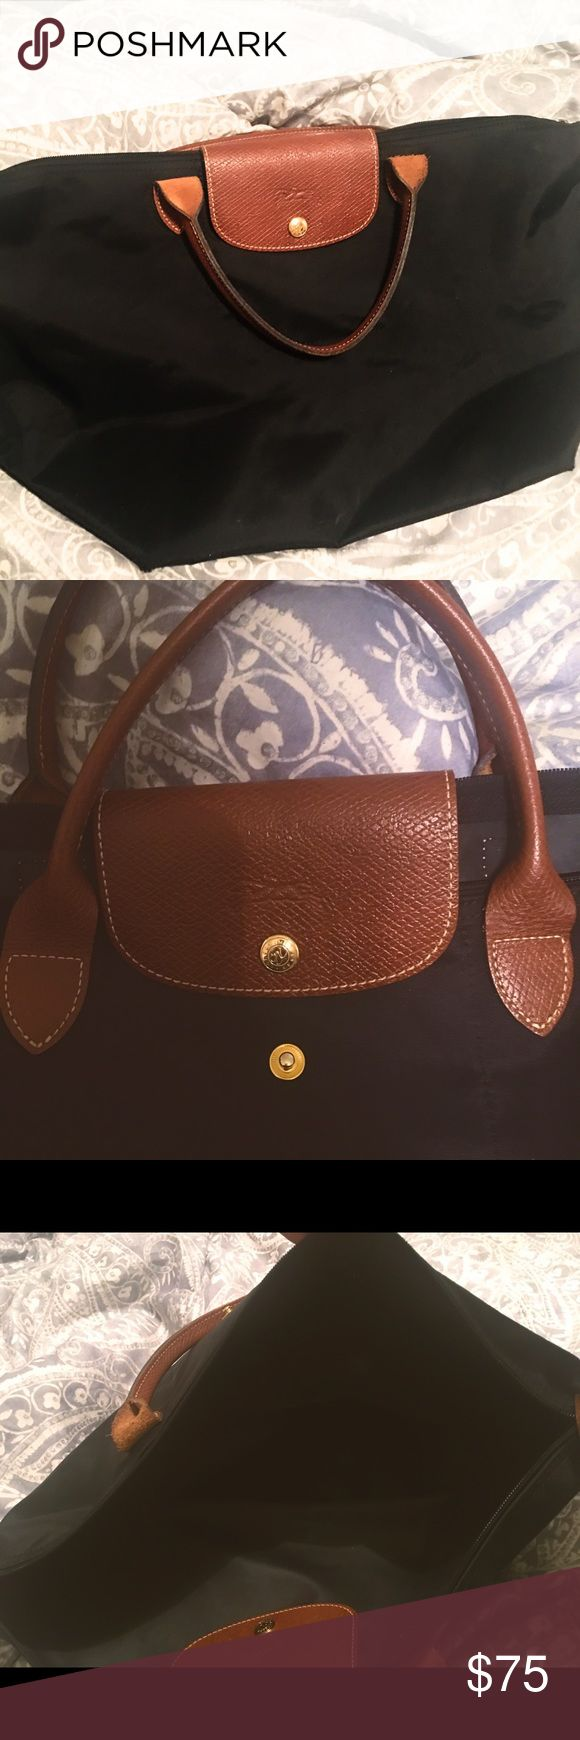 Large Black Longchamp Purse Good Condition Used a good amount but not distressed like heavily used Longchamps. Still has a lot of life left in it -also. I'm not going down on the price given the original price and how good of condition it's still in Longchamp Bags